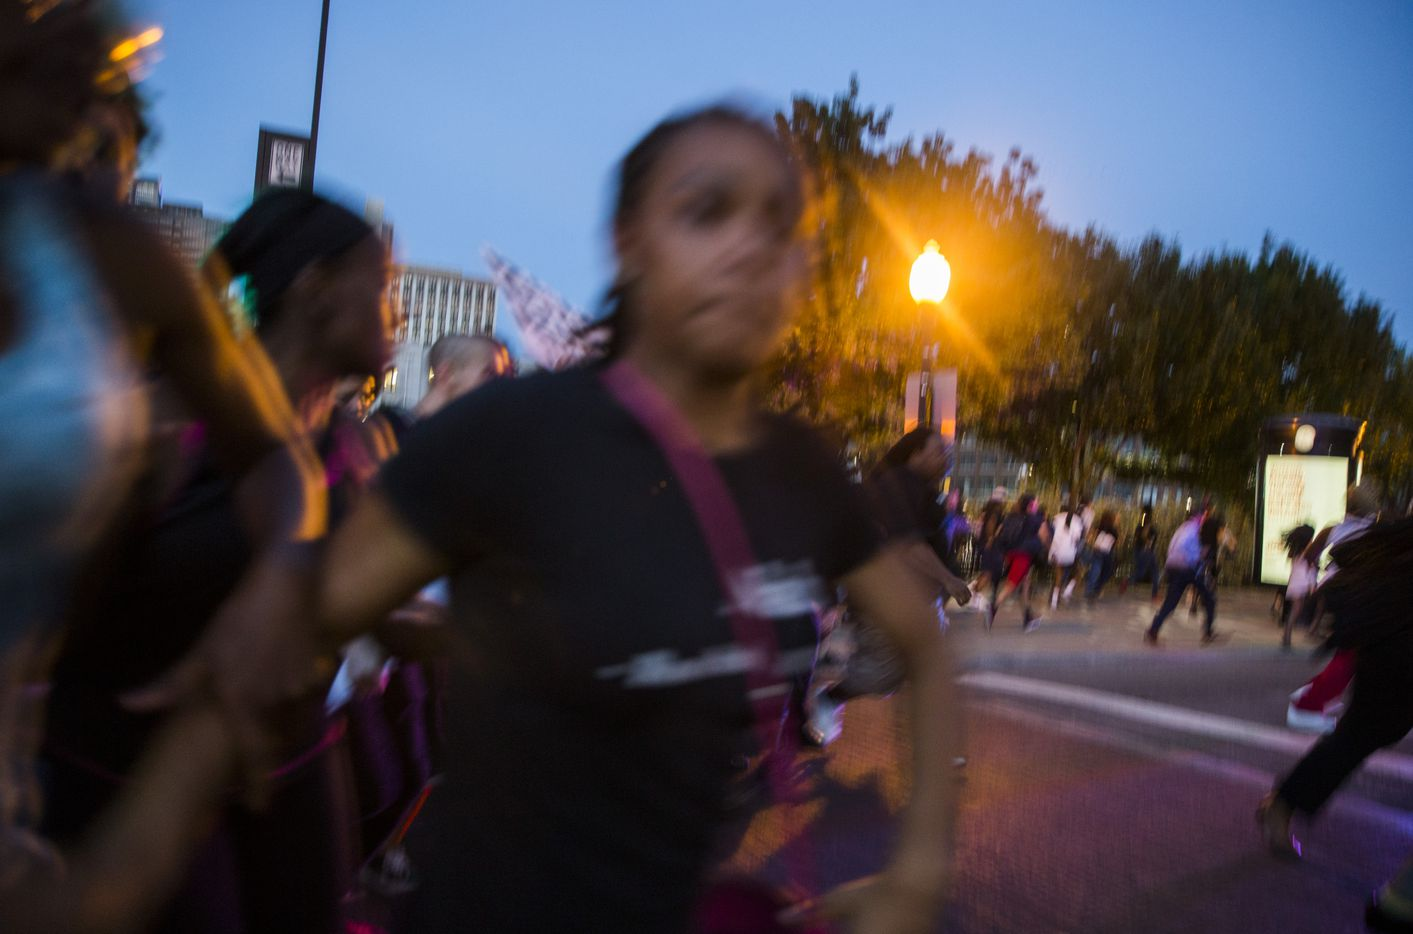 People run at the corner of Commerce and South Market streets after shots were fired following a Black Lives Matter protest. (Ashley Landis/Staff Photographer)